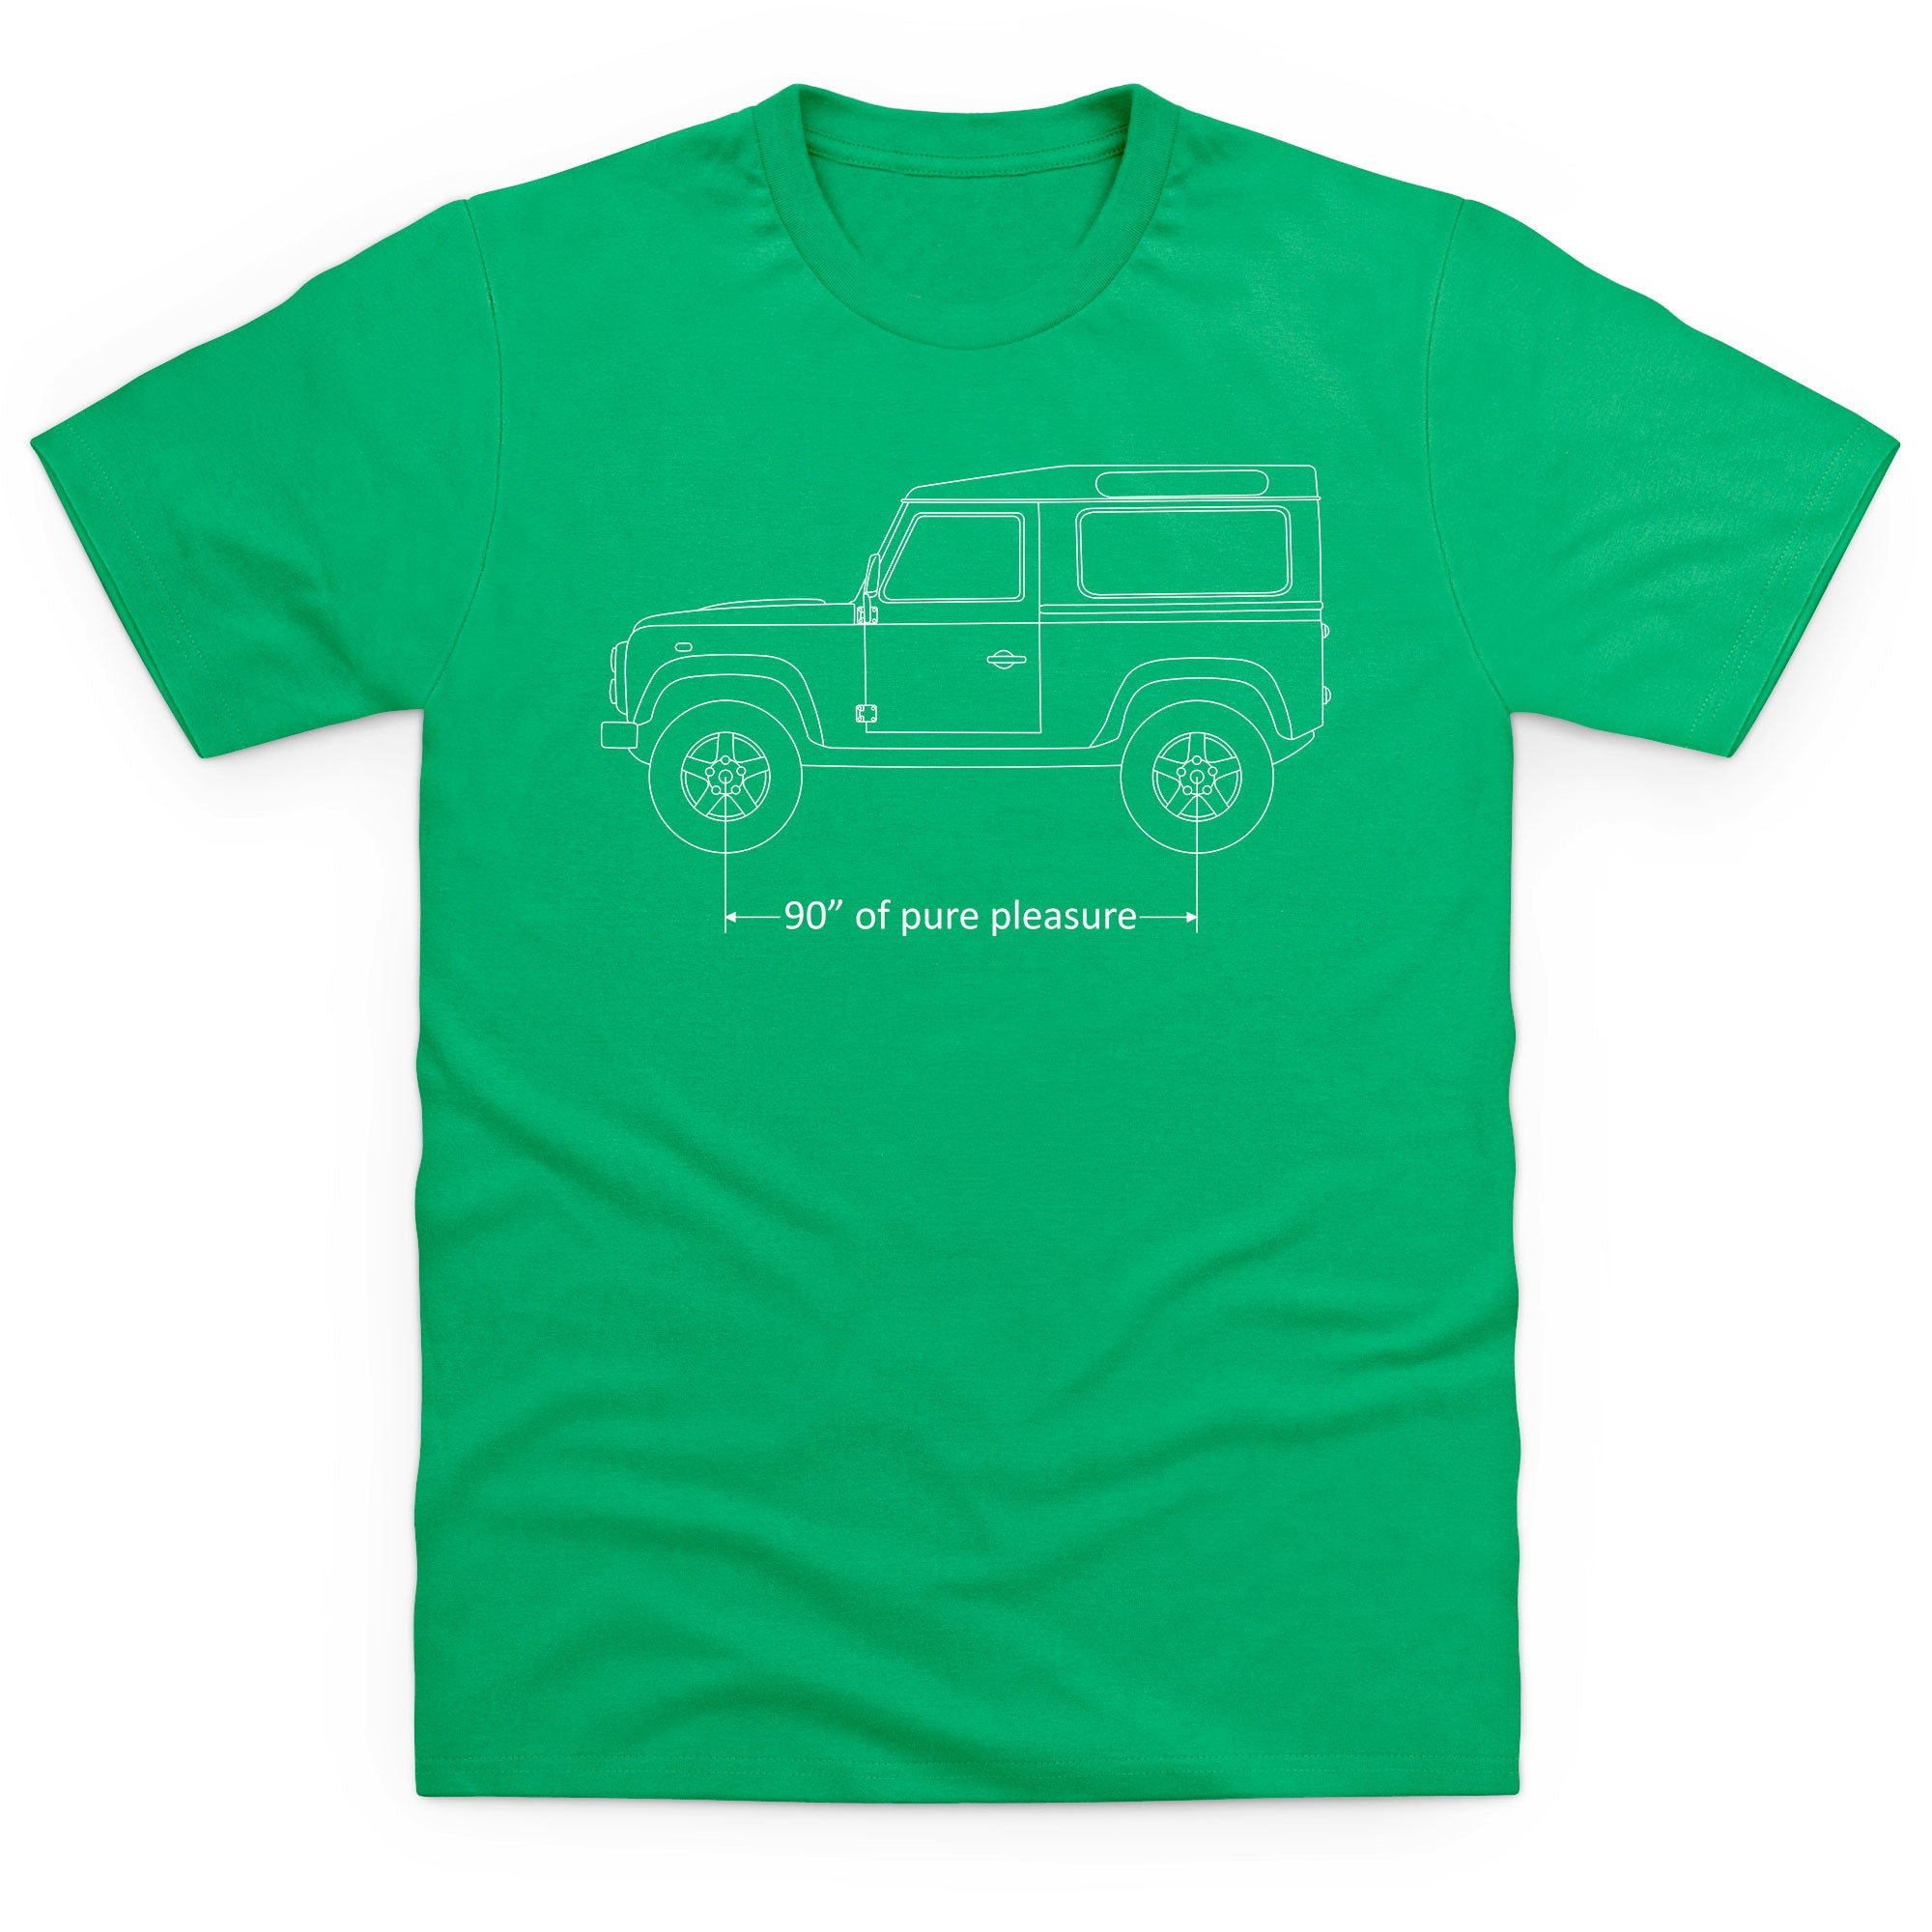 CHEAP 90 Inches of Pure Pleasure Kid's T Shirt 28109022405 – Clothing Accessories